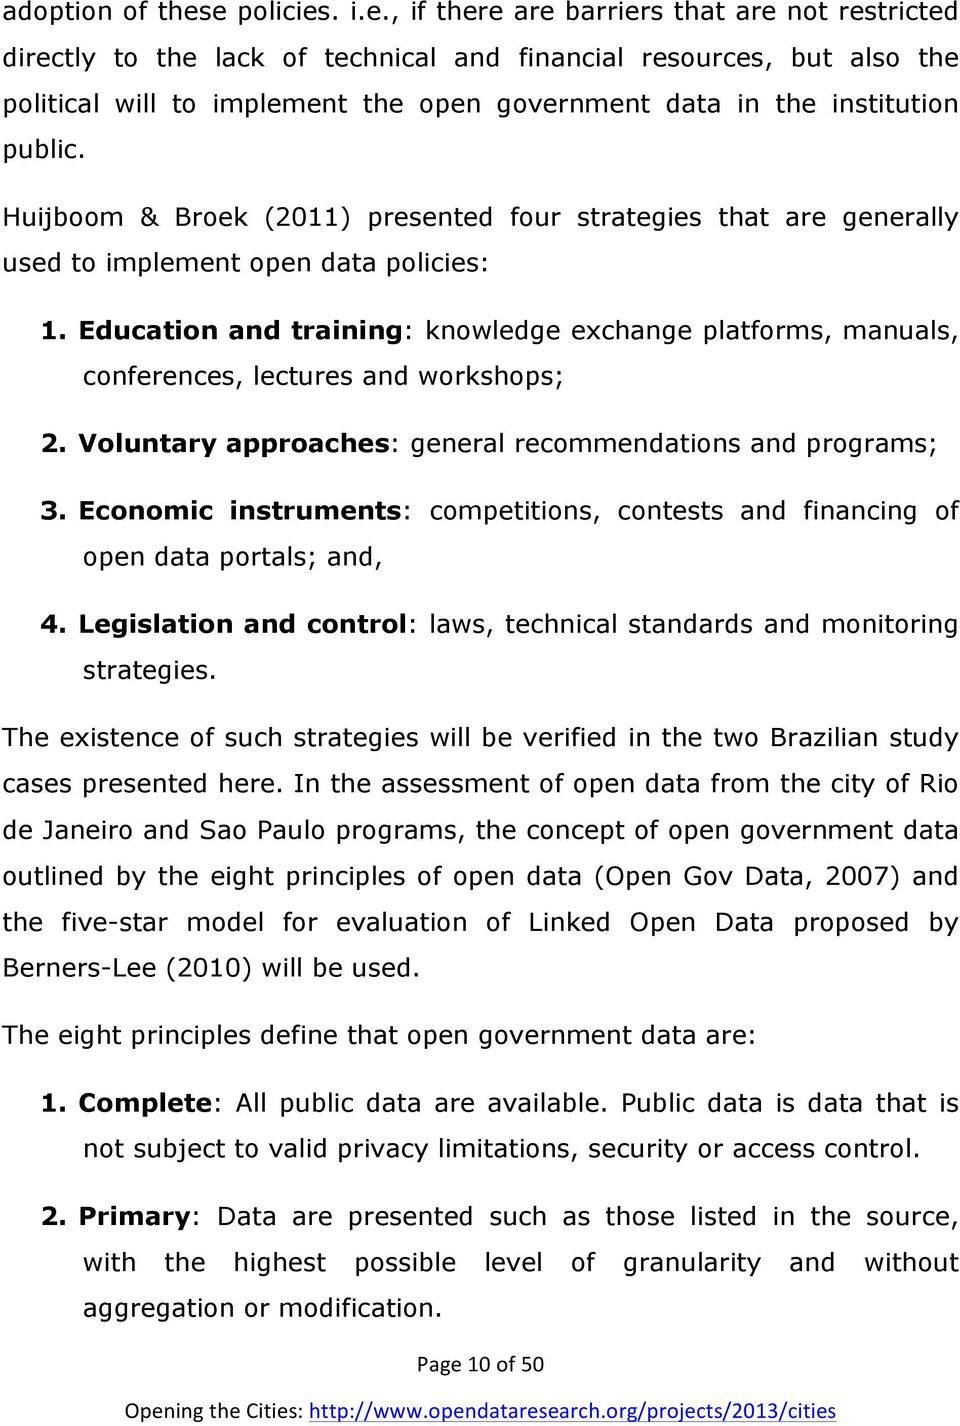 institution public. Huijboom & Broek (2011) presented four strategies that are generally used to implement open data policies: 1.